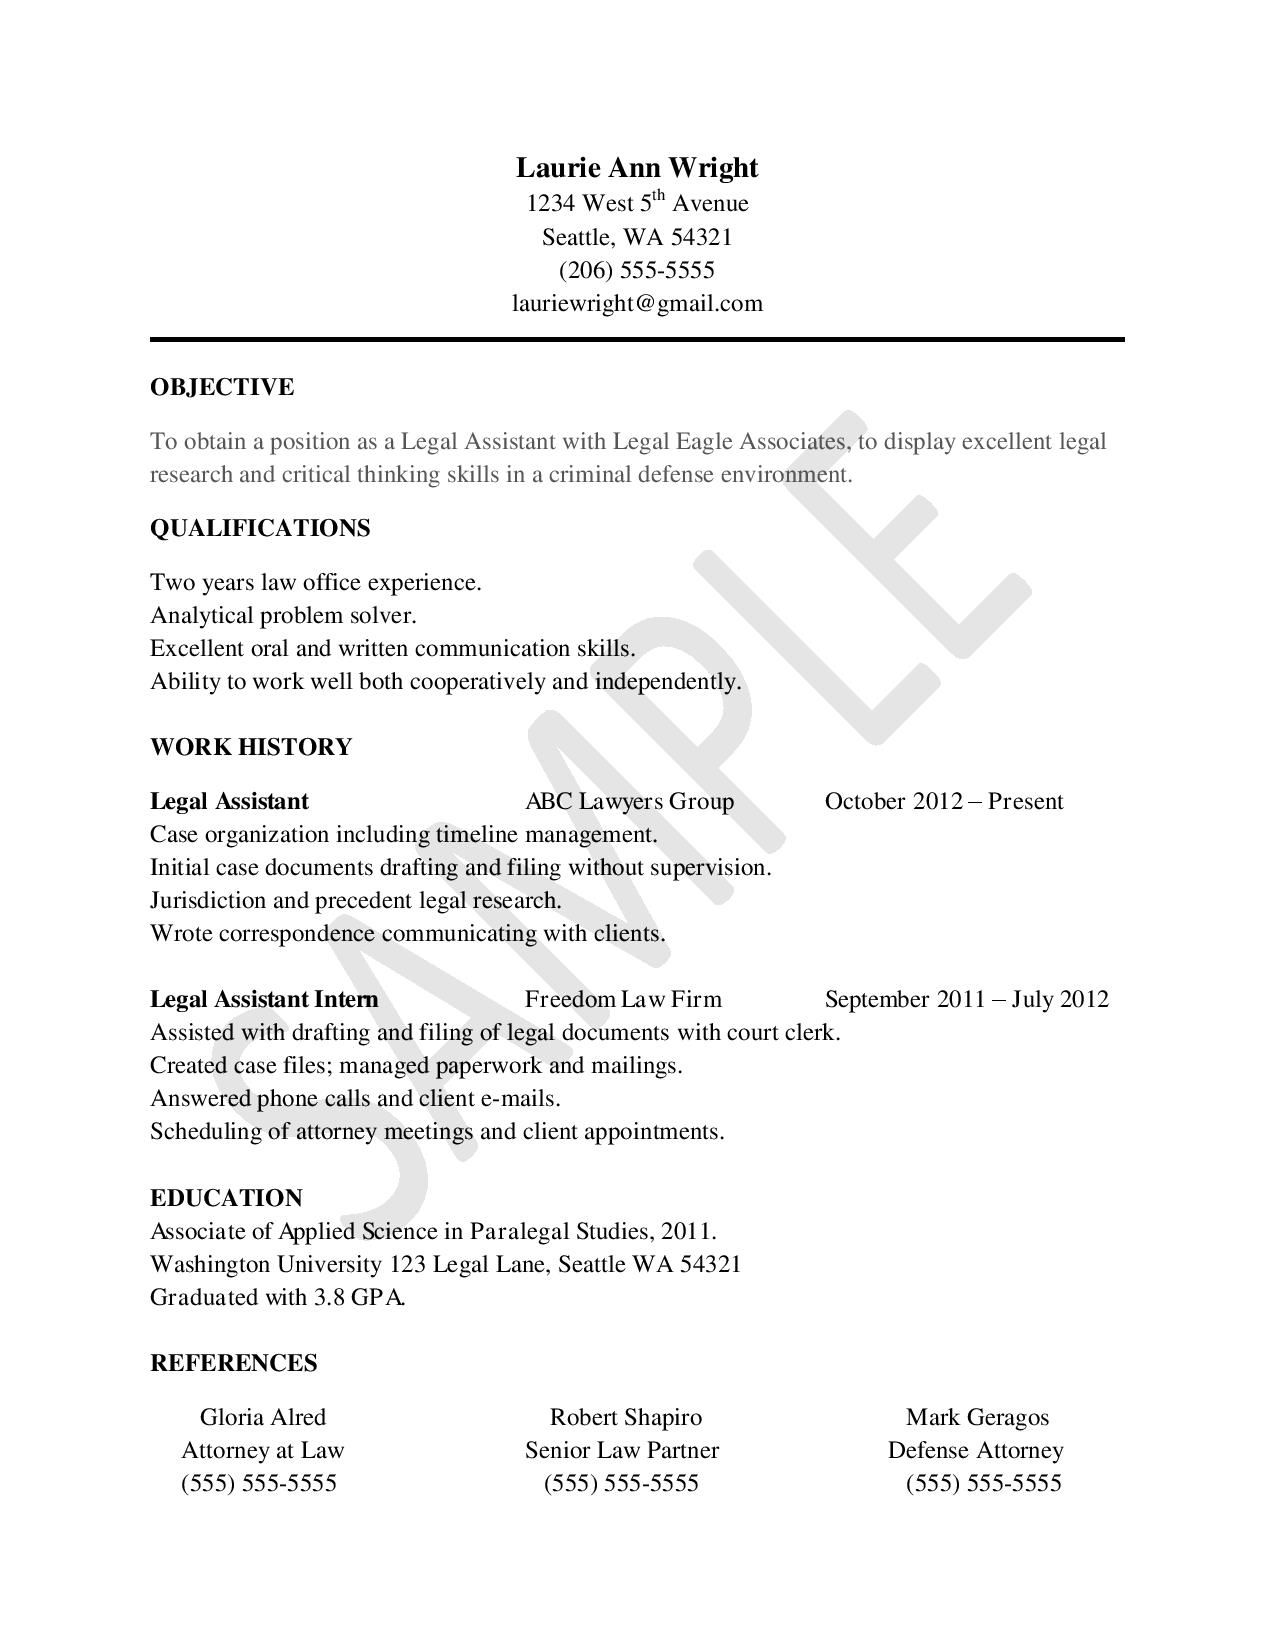 Sample Resume for Legal Assistants Downloadable resume